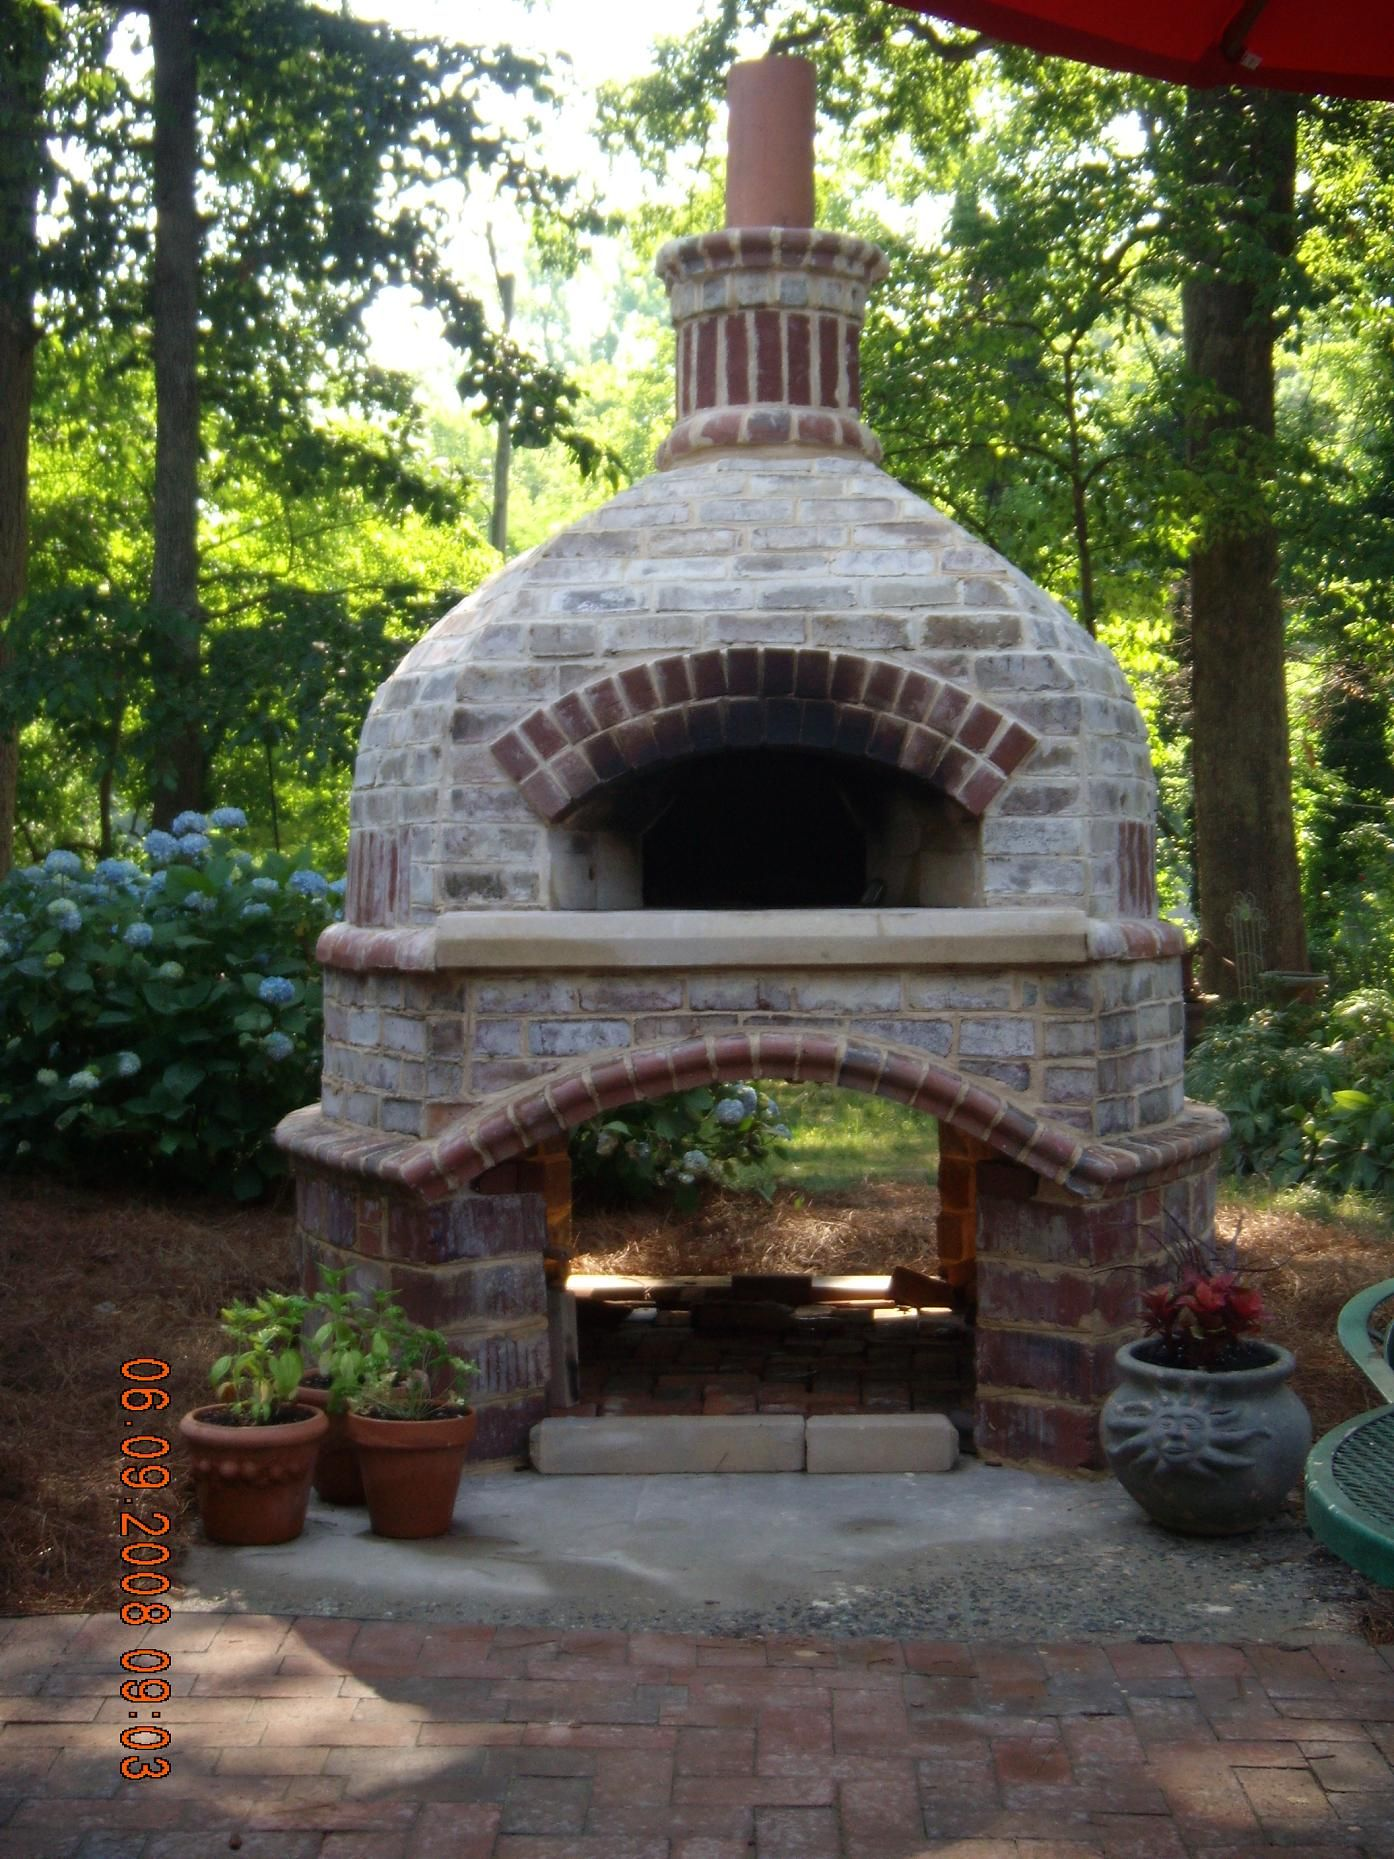 Pin By Rita Baller On Things For The Garden Pinterest Pizza Oven